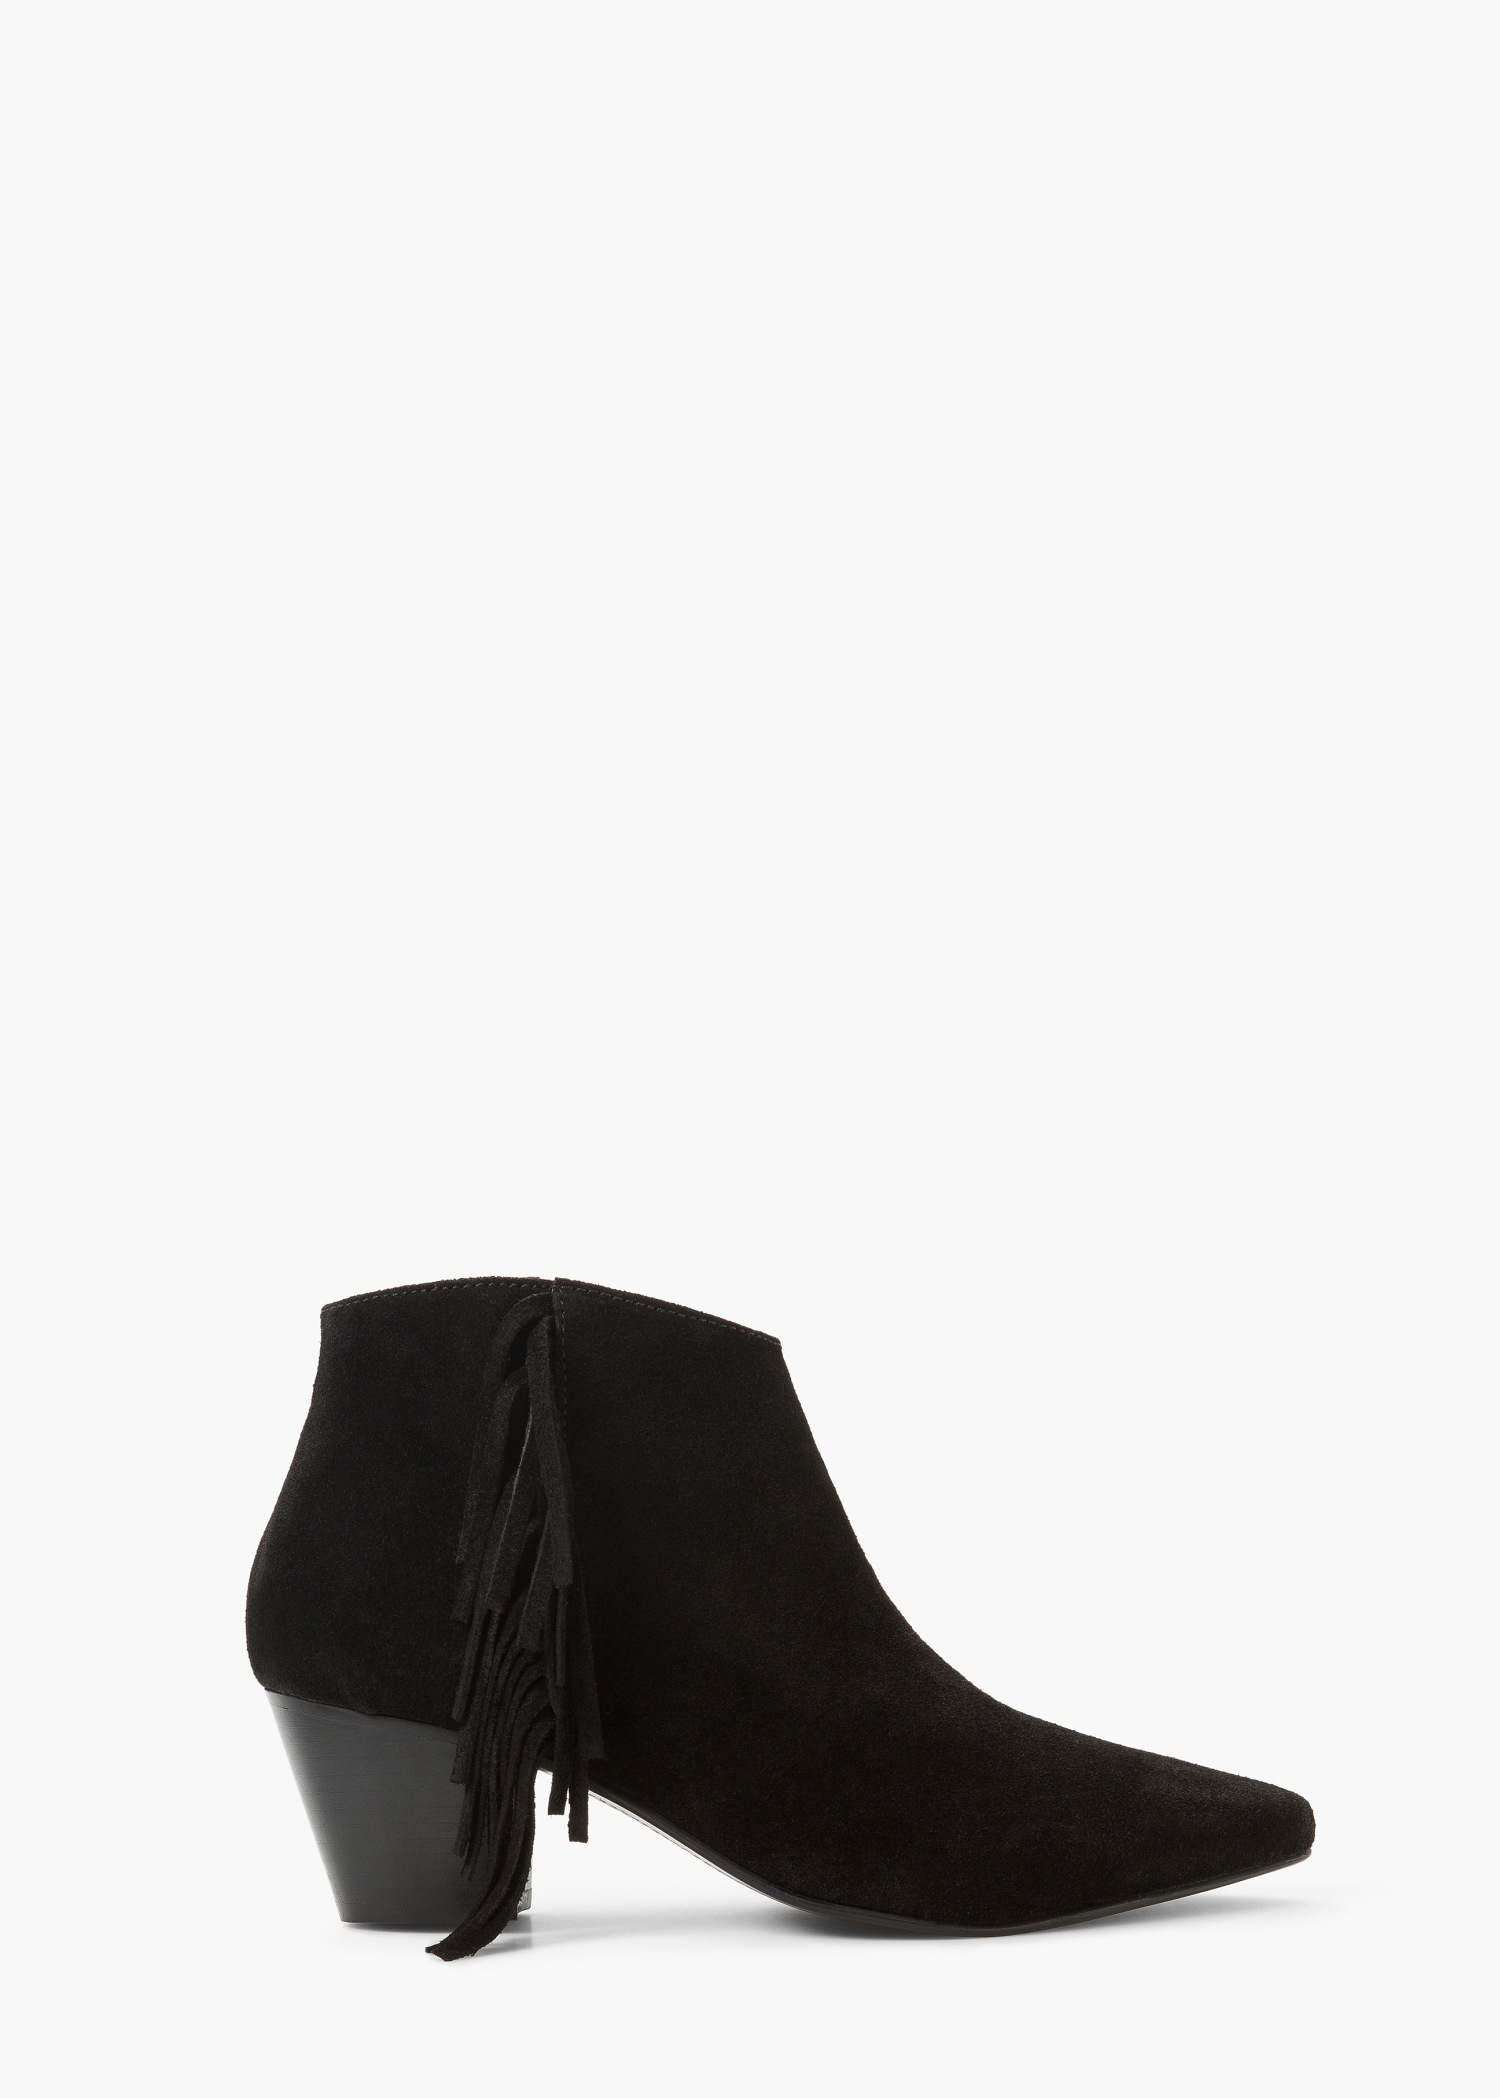 Mango Fringed Suede Ankle Boot in Black | Lyst